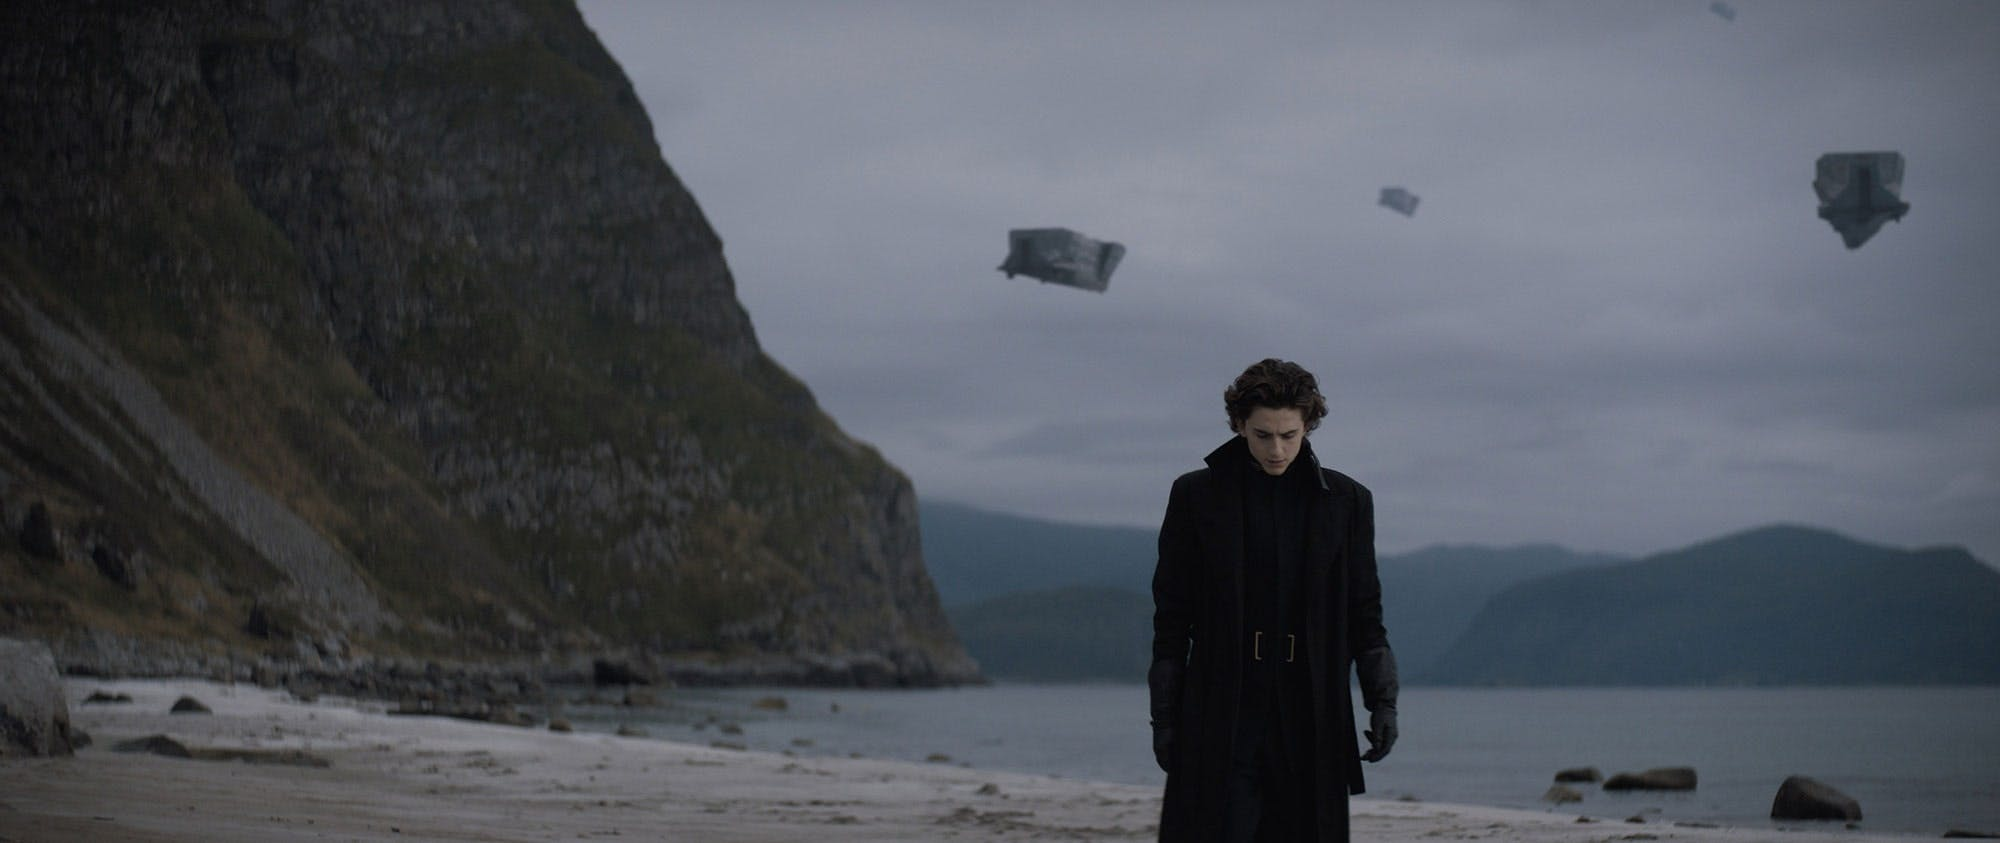 TIMOTHEE CHALAMET: WHAT MADE DUNE EXHAUSTING TO SHOOT